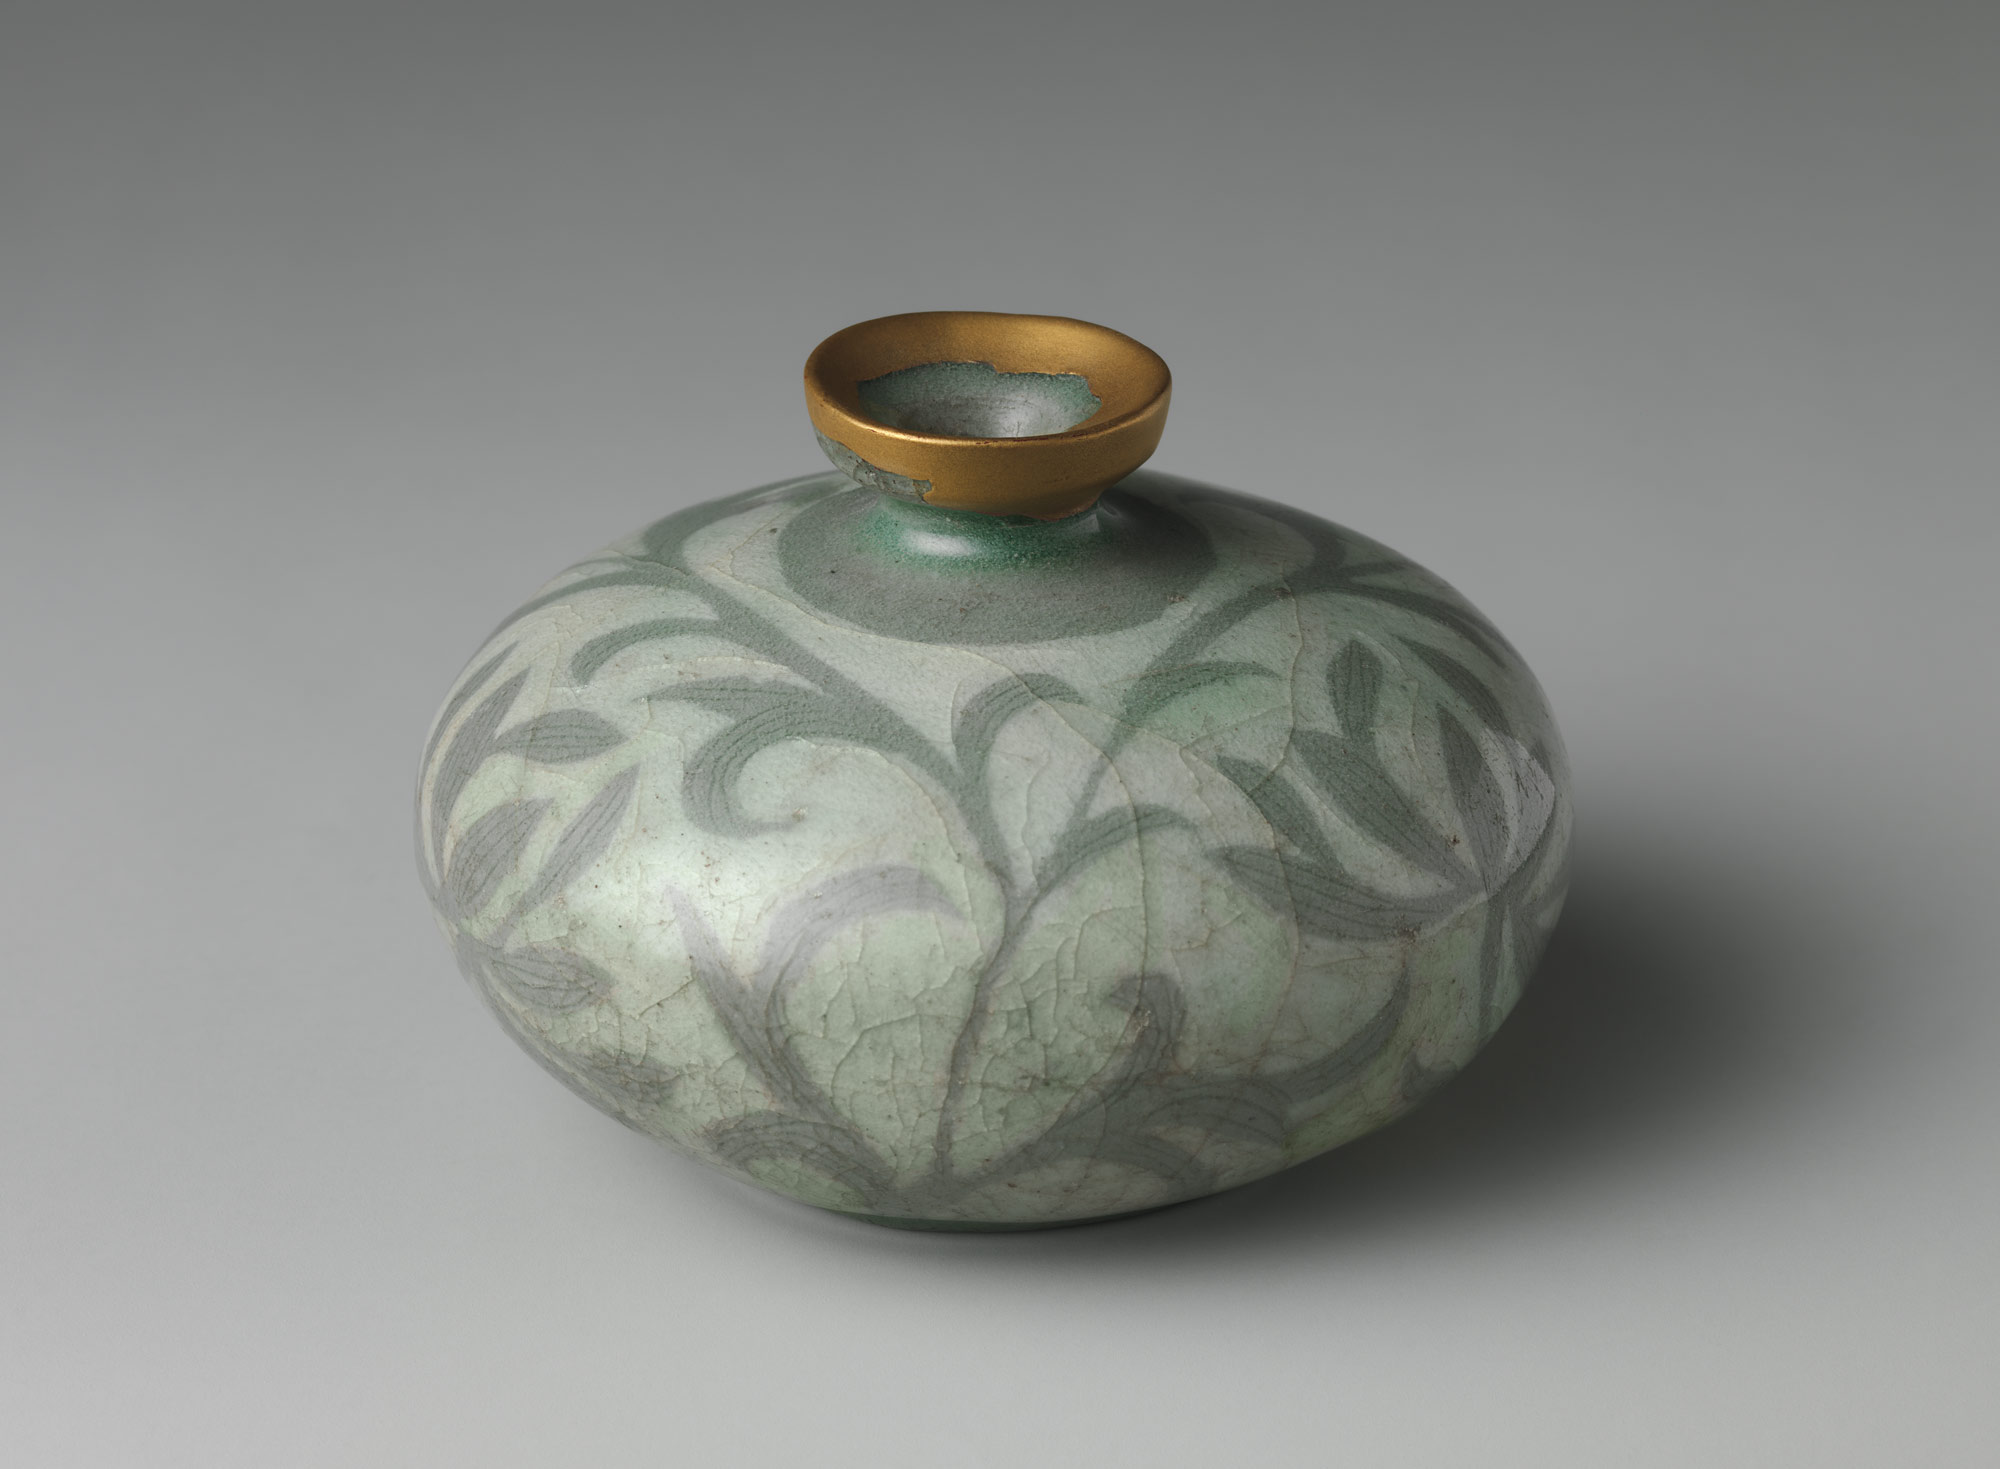 goryeo celadon essay heilbrunn timeline of art history the oil bottle decoration of peony leaves